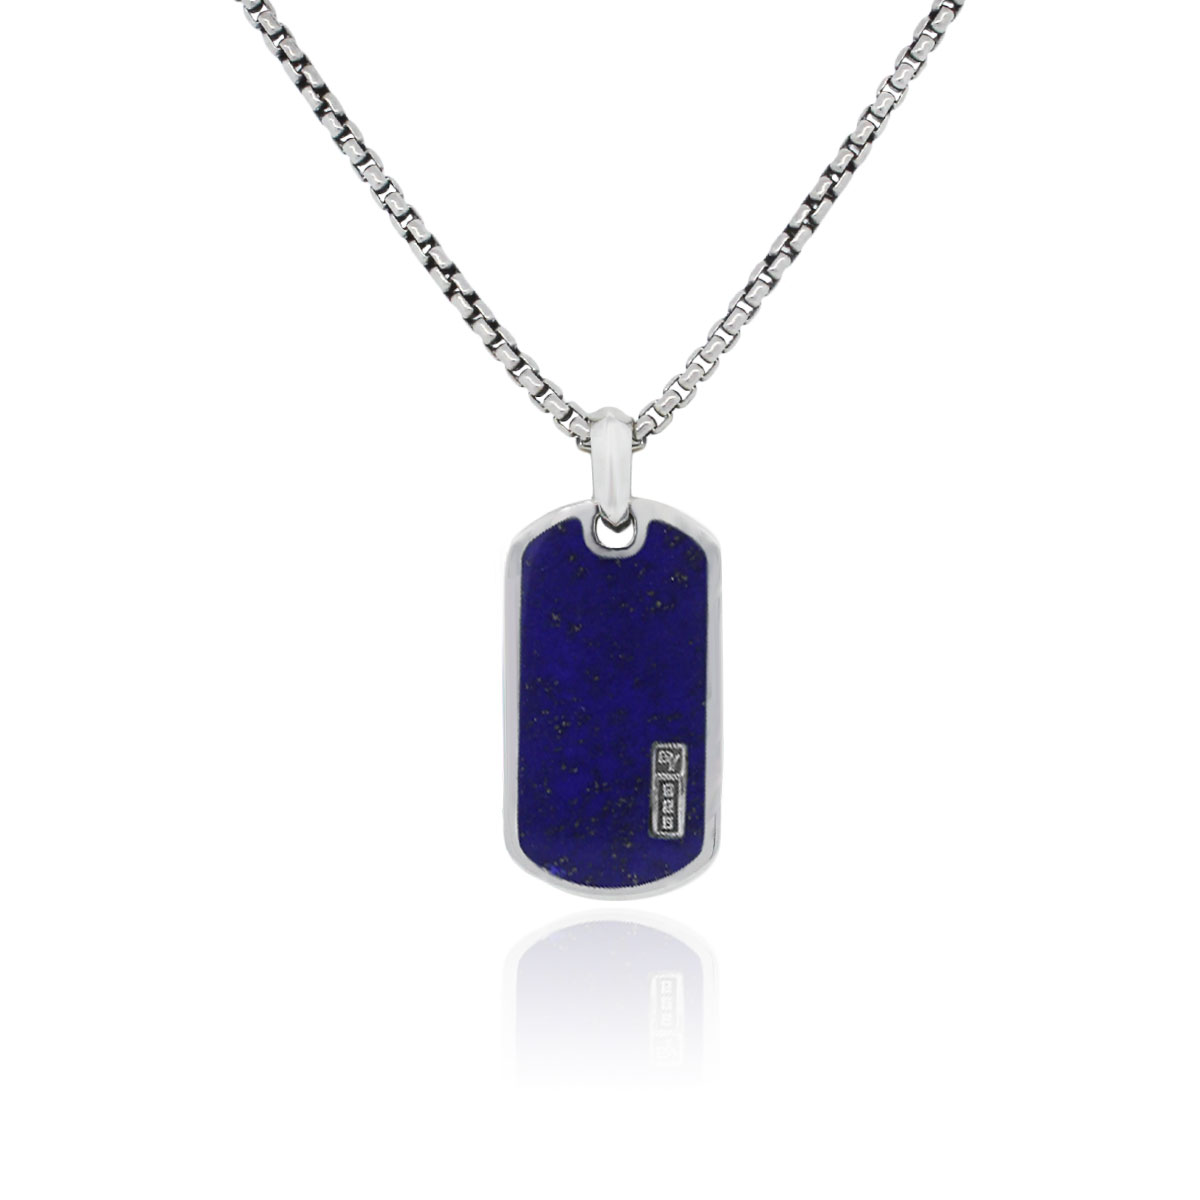 You are viewing this David Yurman Lapiz Small Dog Tag Slide Pendant Necklace!